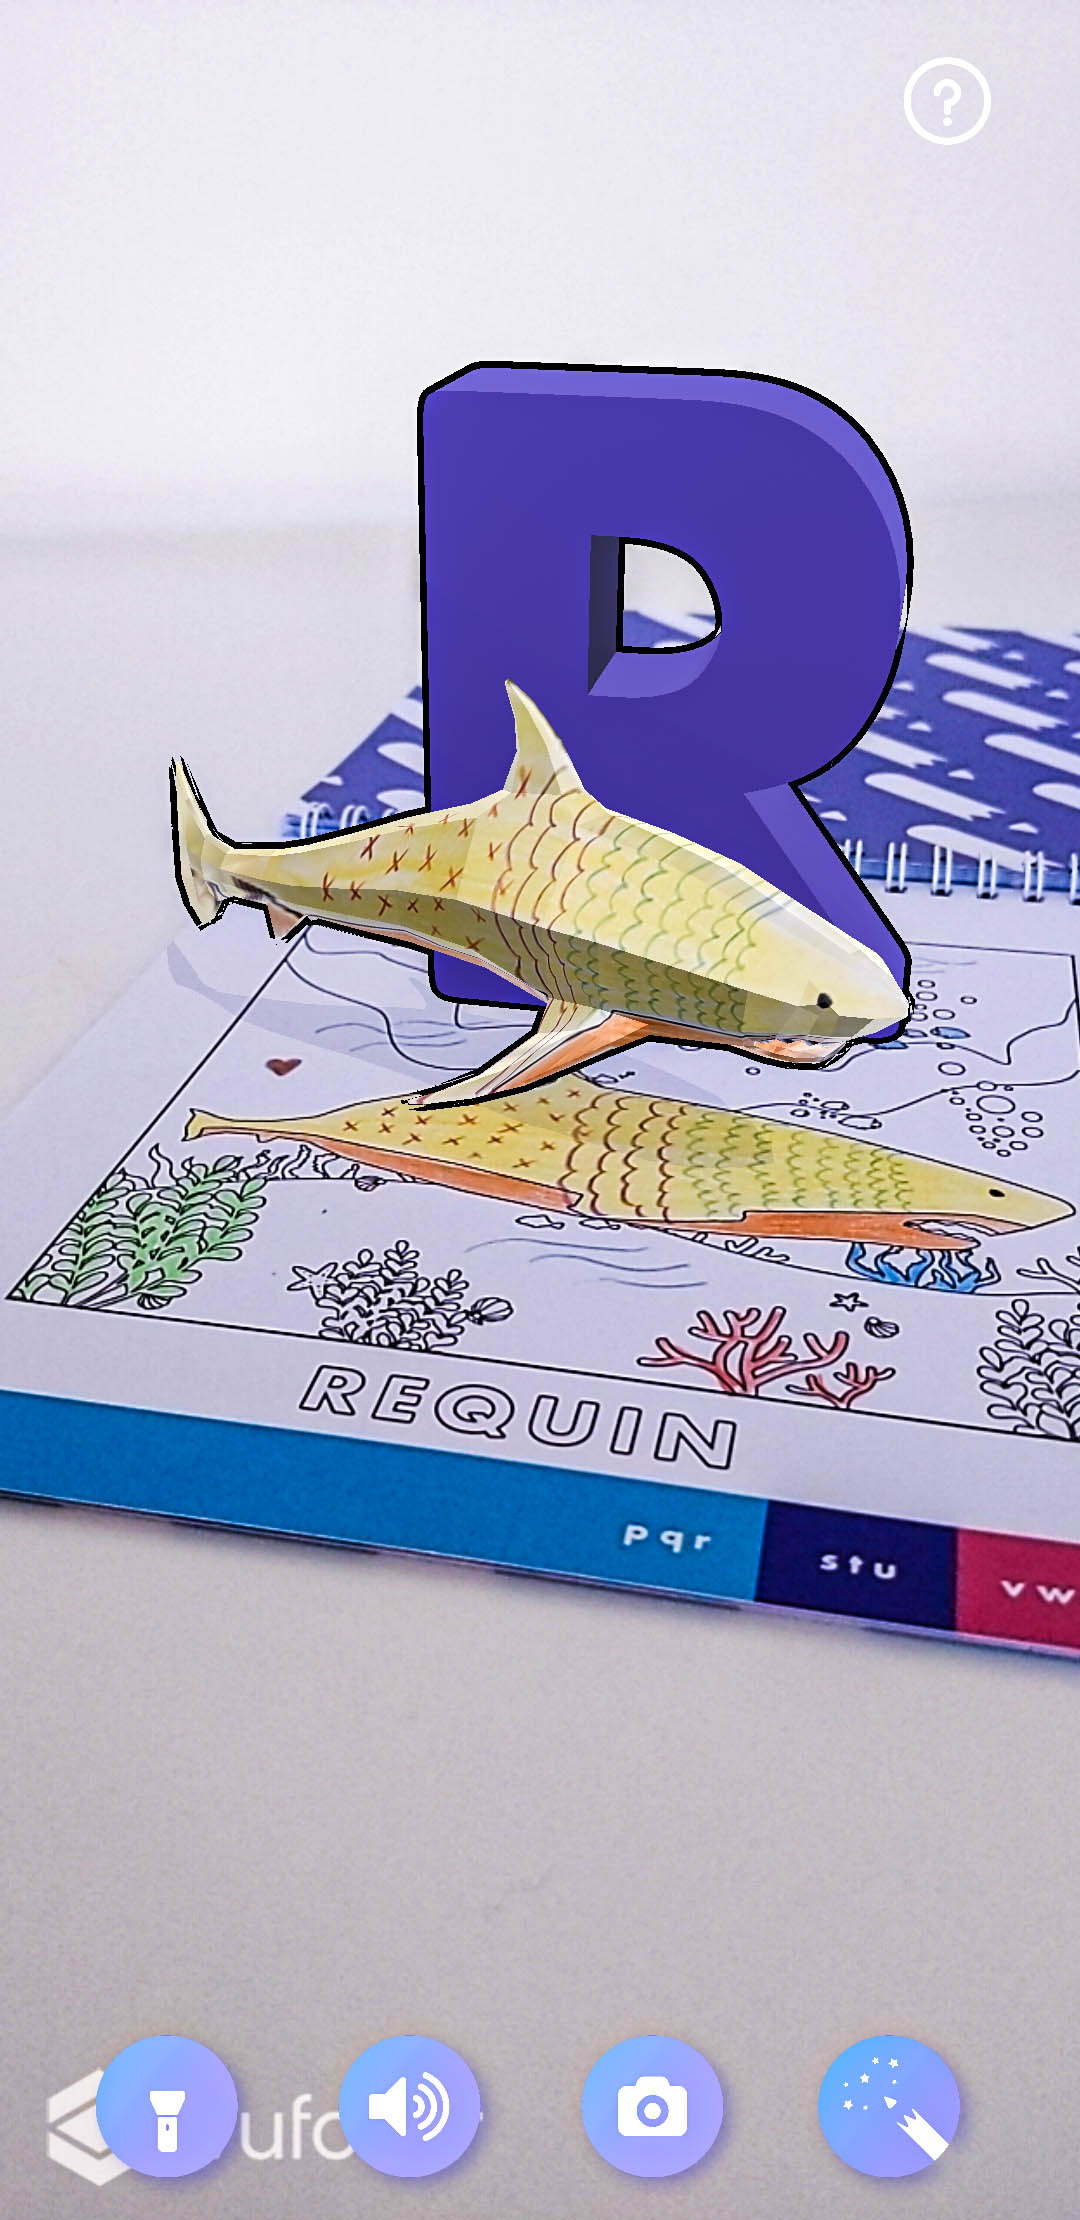 R comme requin